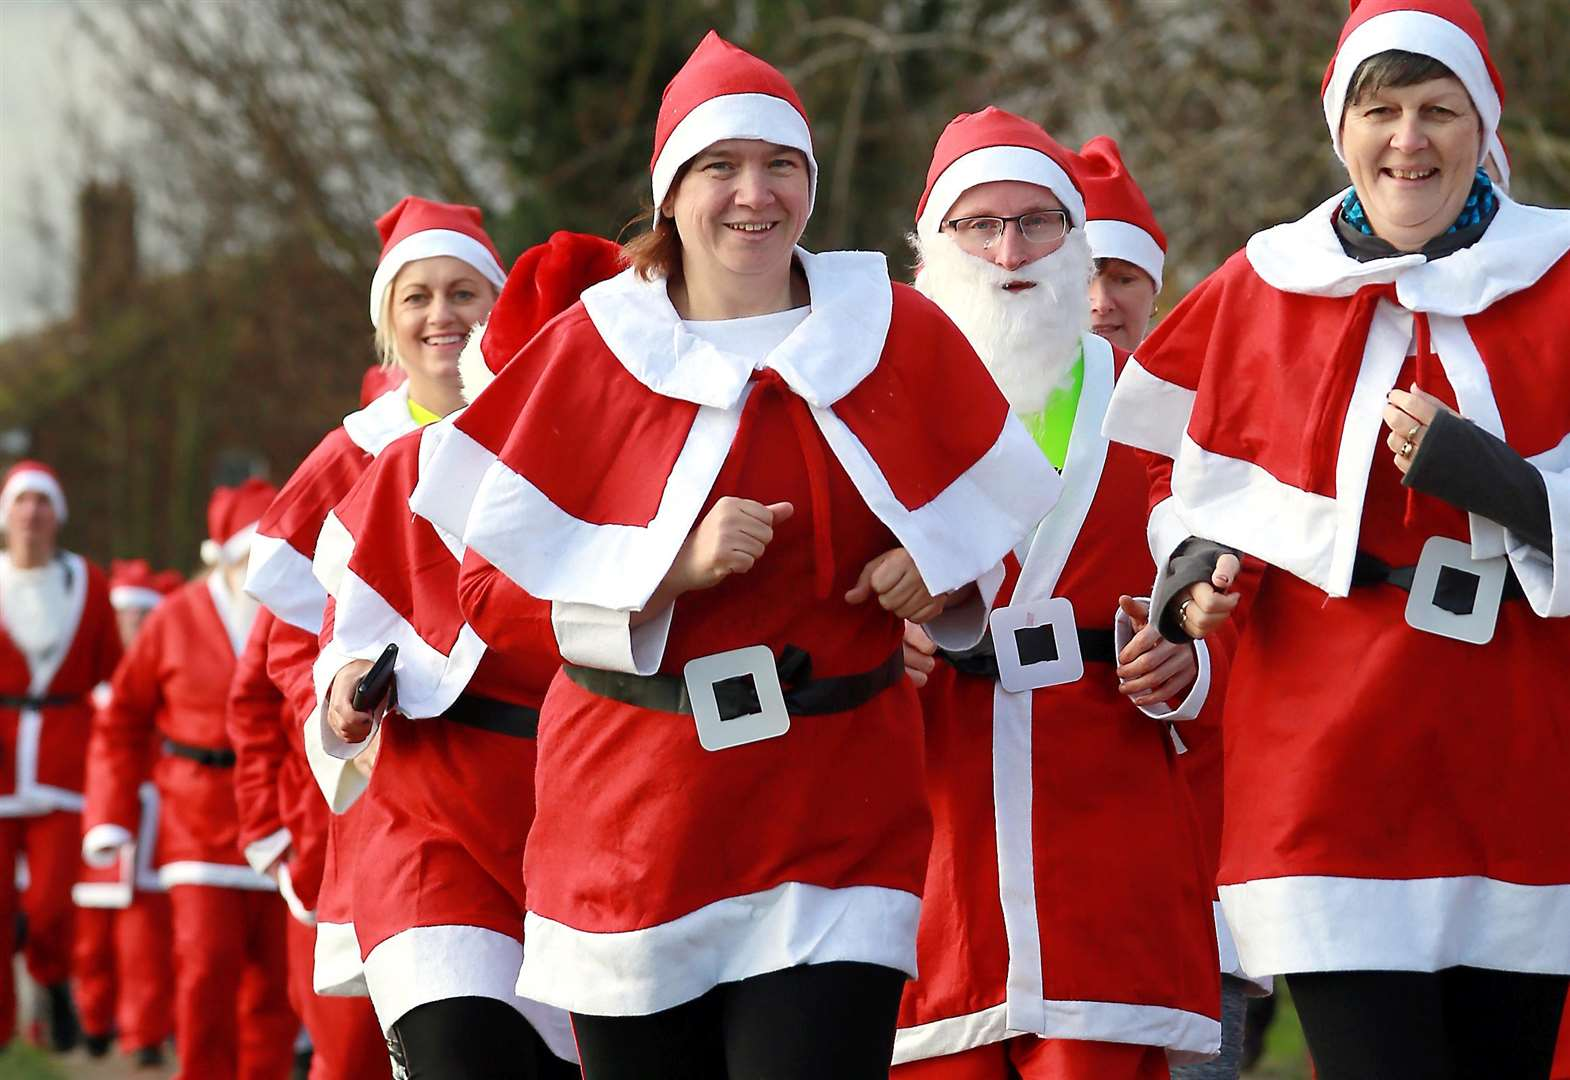 Families keep fit and elfie